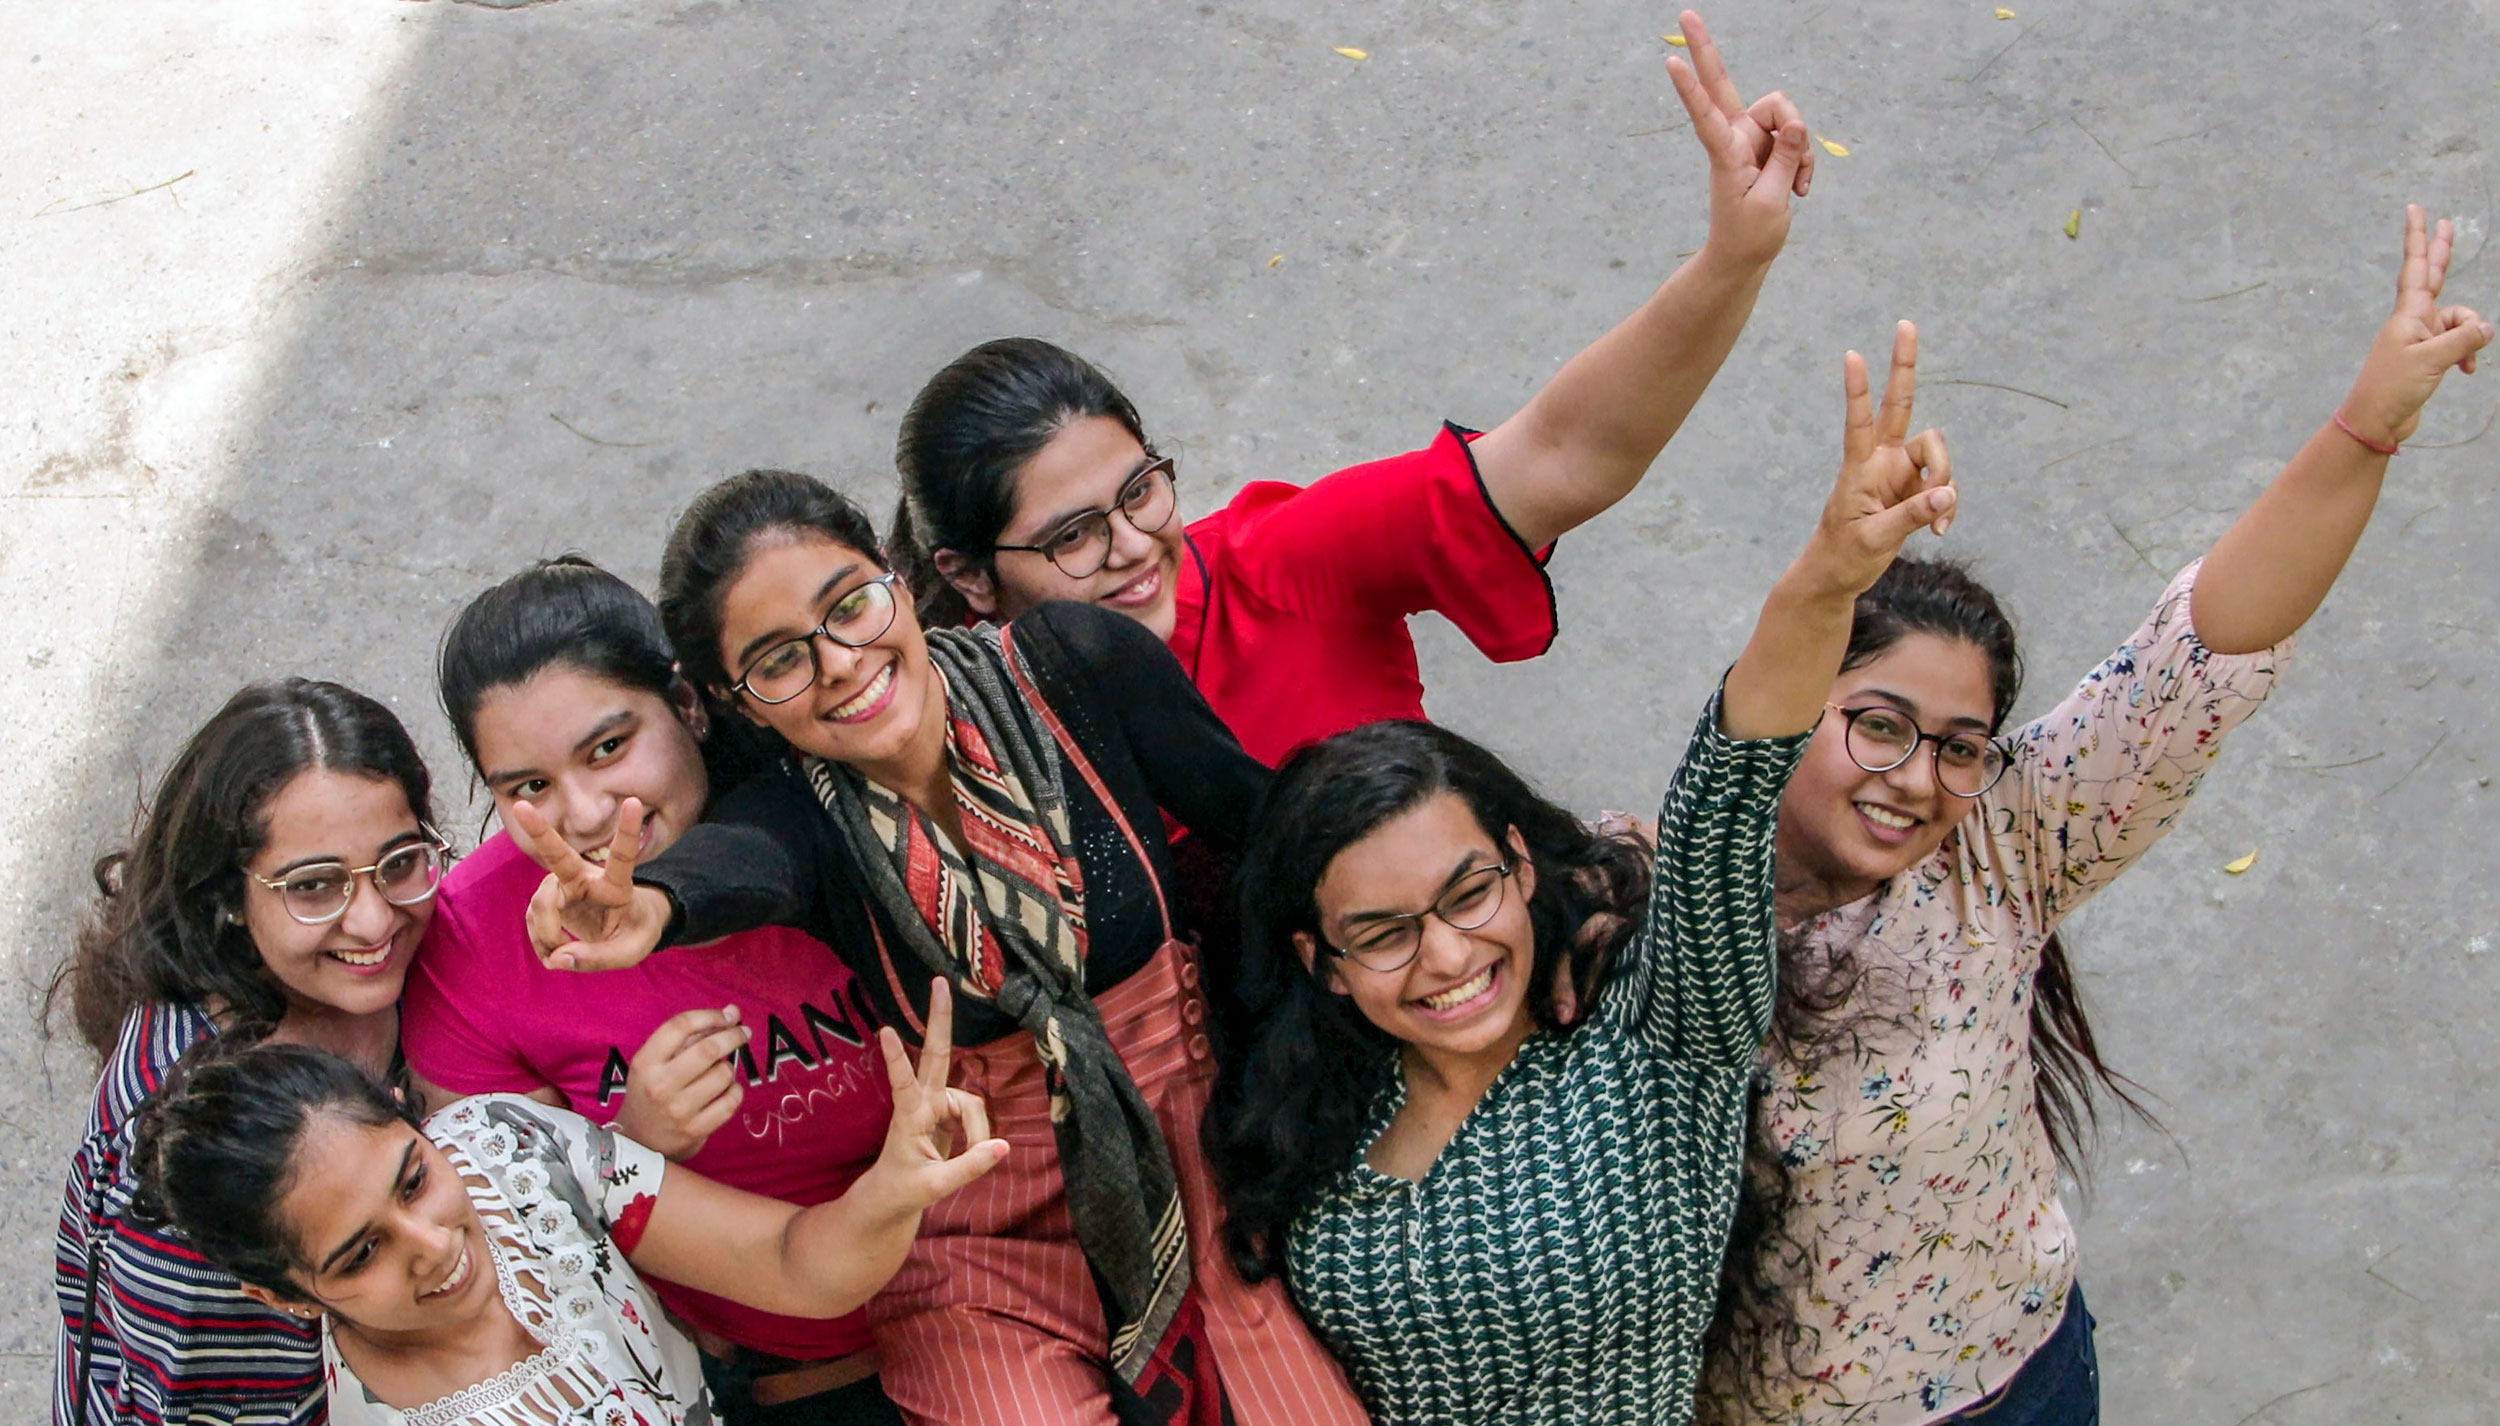 Students celebrate after the CBSE class XII results were declared, in New Delhi, on May 2, 2019.